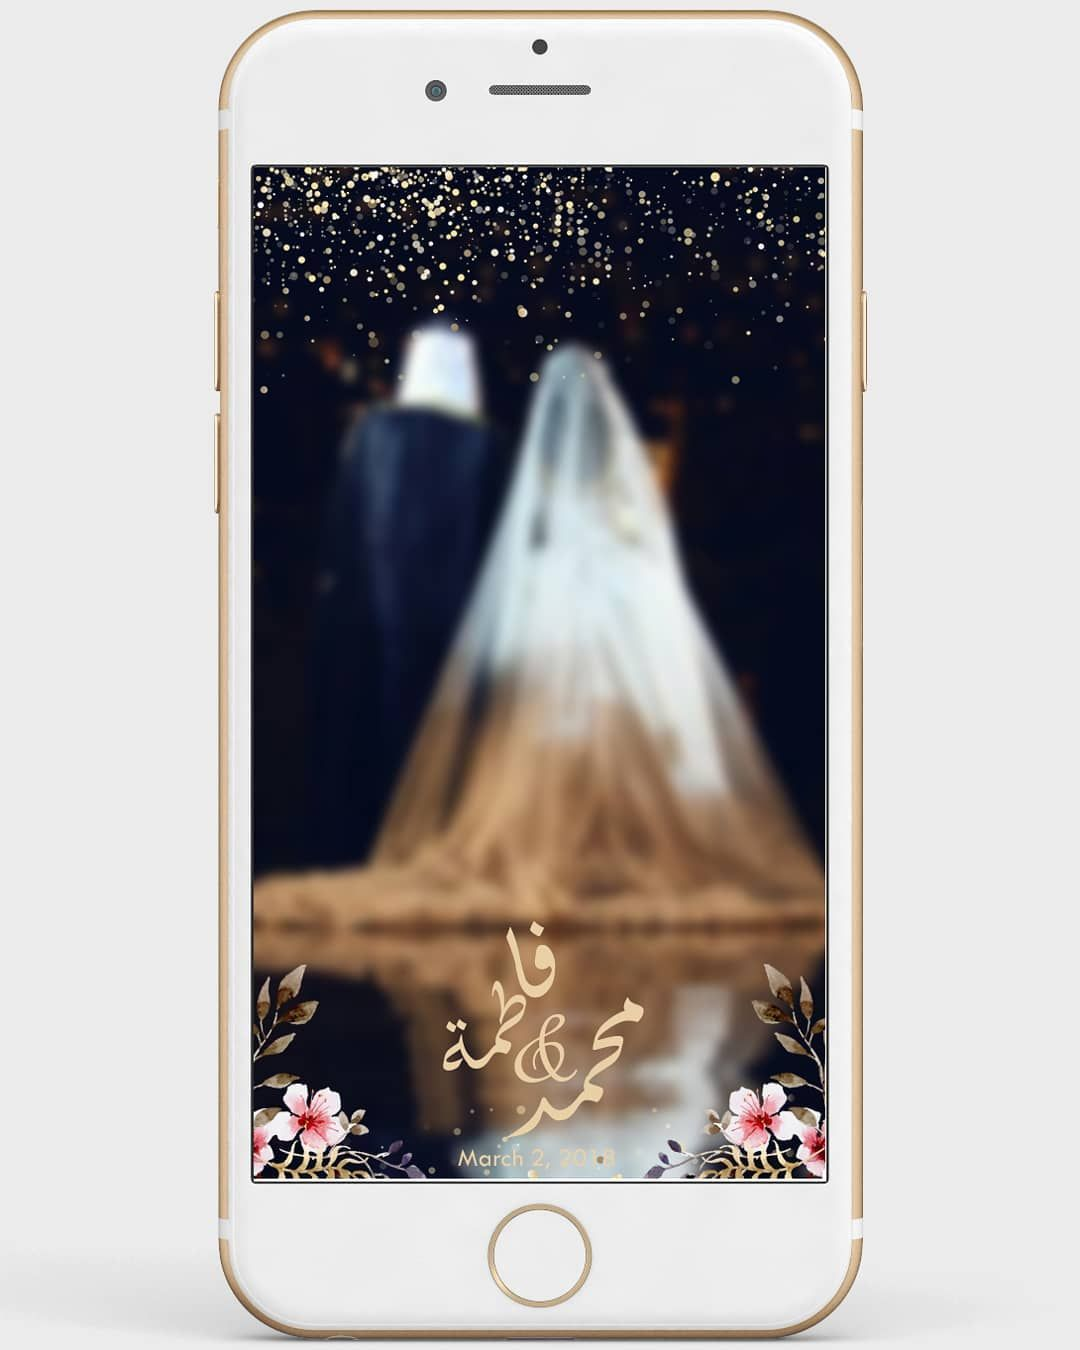 Geofilter Snapchat Design Your Wedding Your Special Occuasion تصميم فلتر سناب شات للمناسبات الخاصة Snapchat Filter Design Filter Design Snapchat Filters